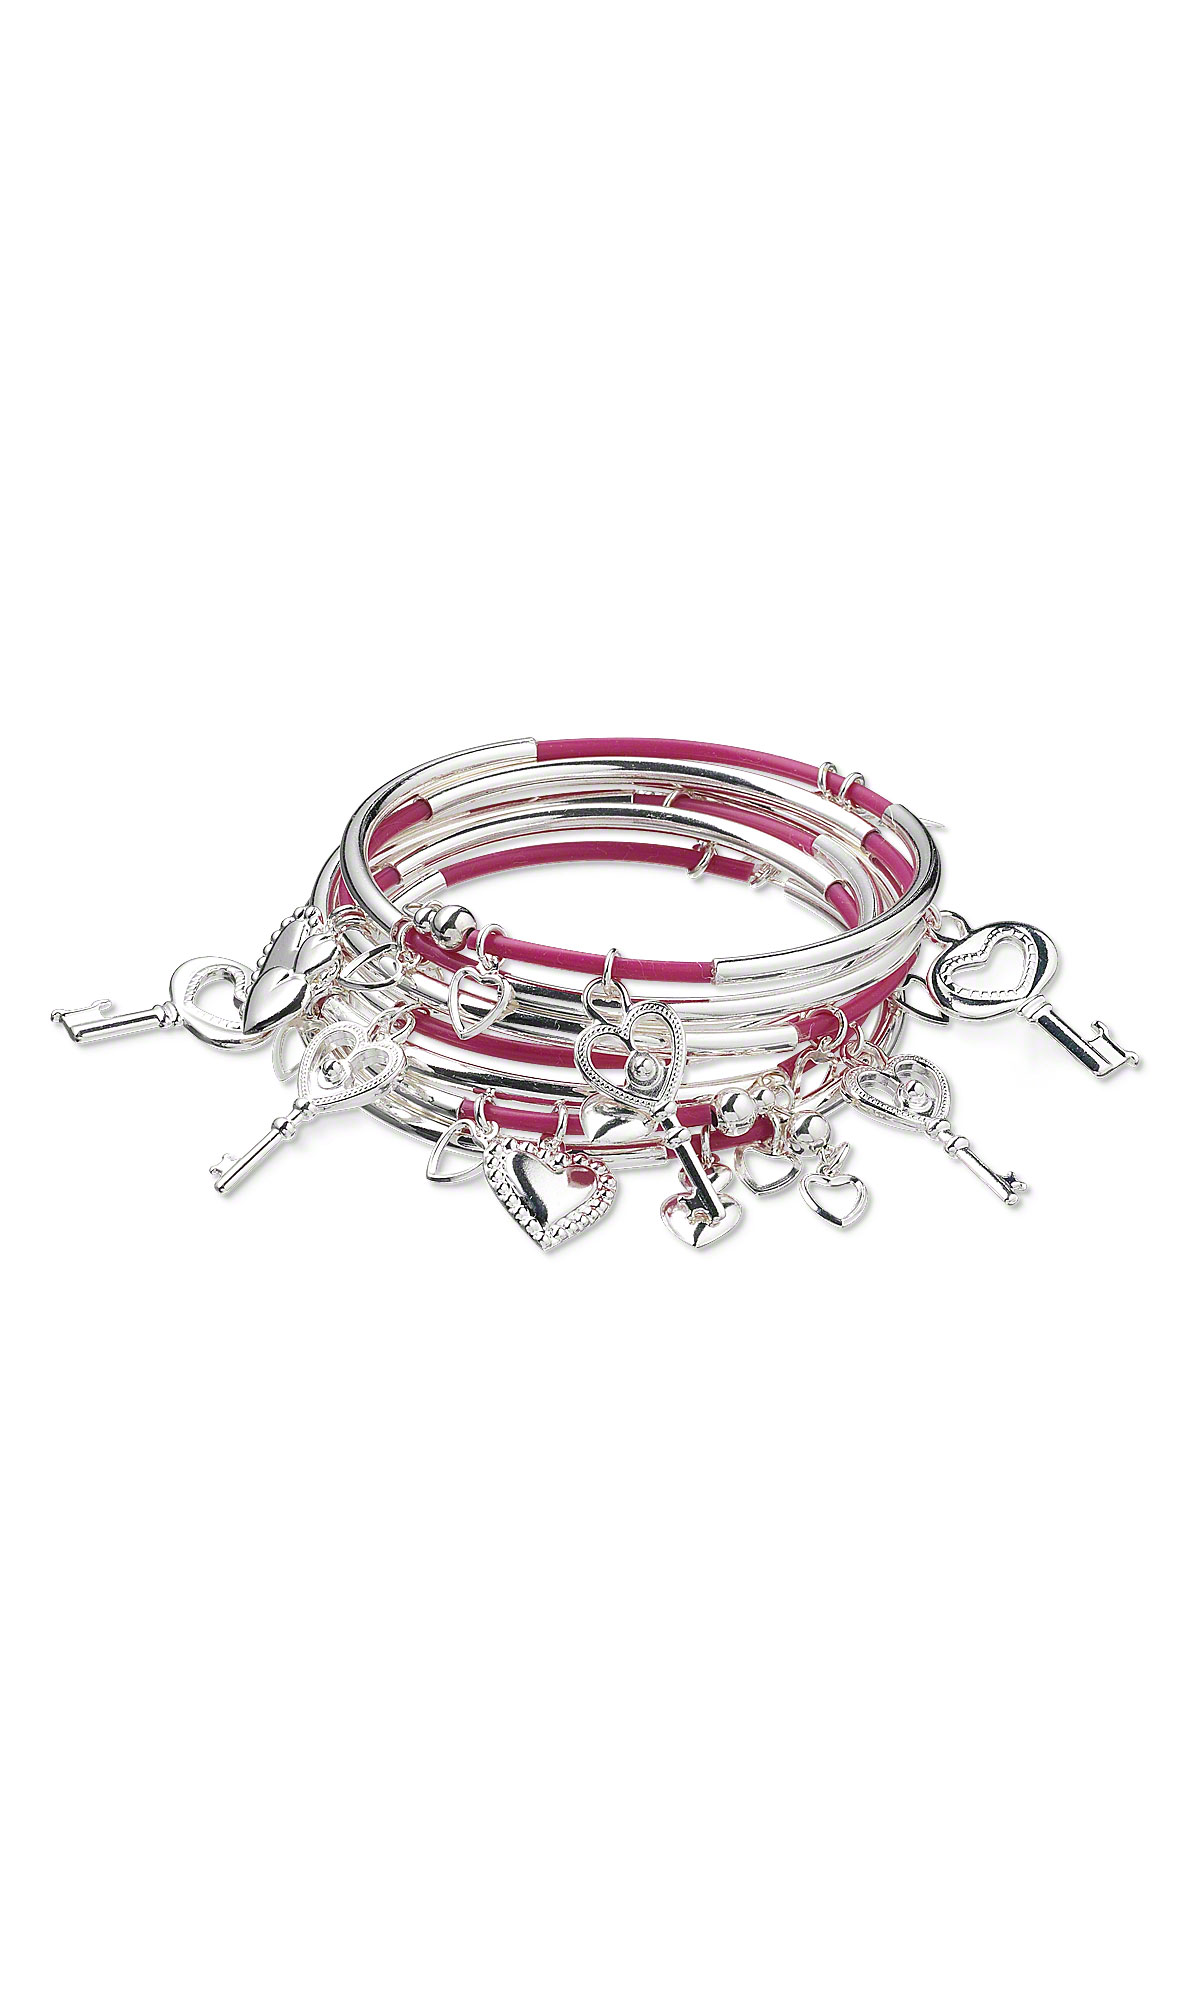 Jewelry Design - Memory Wire Bracelet with Silver-Plated Charms and ...